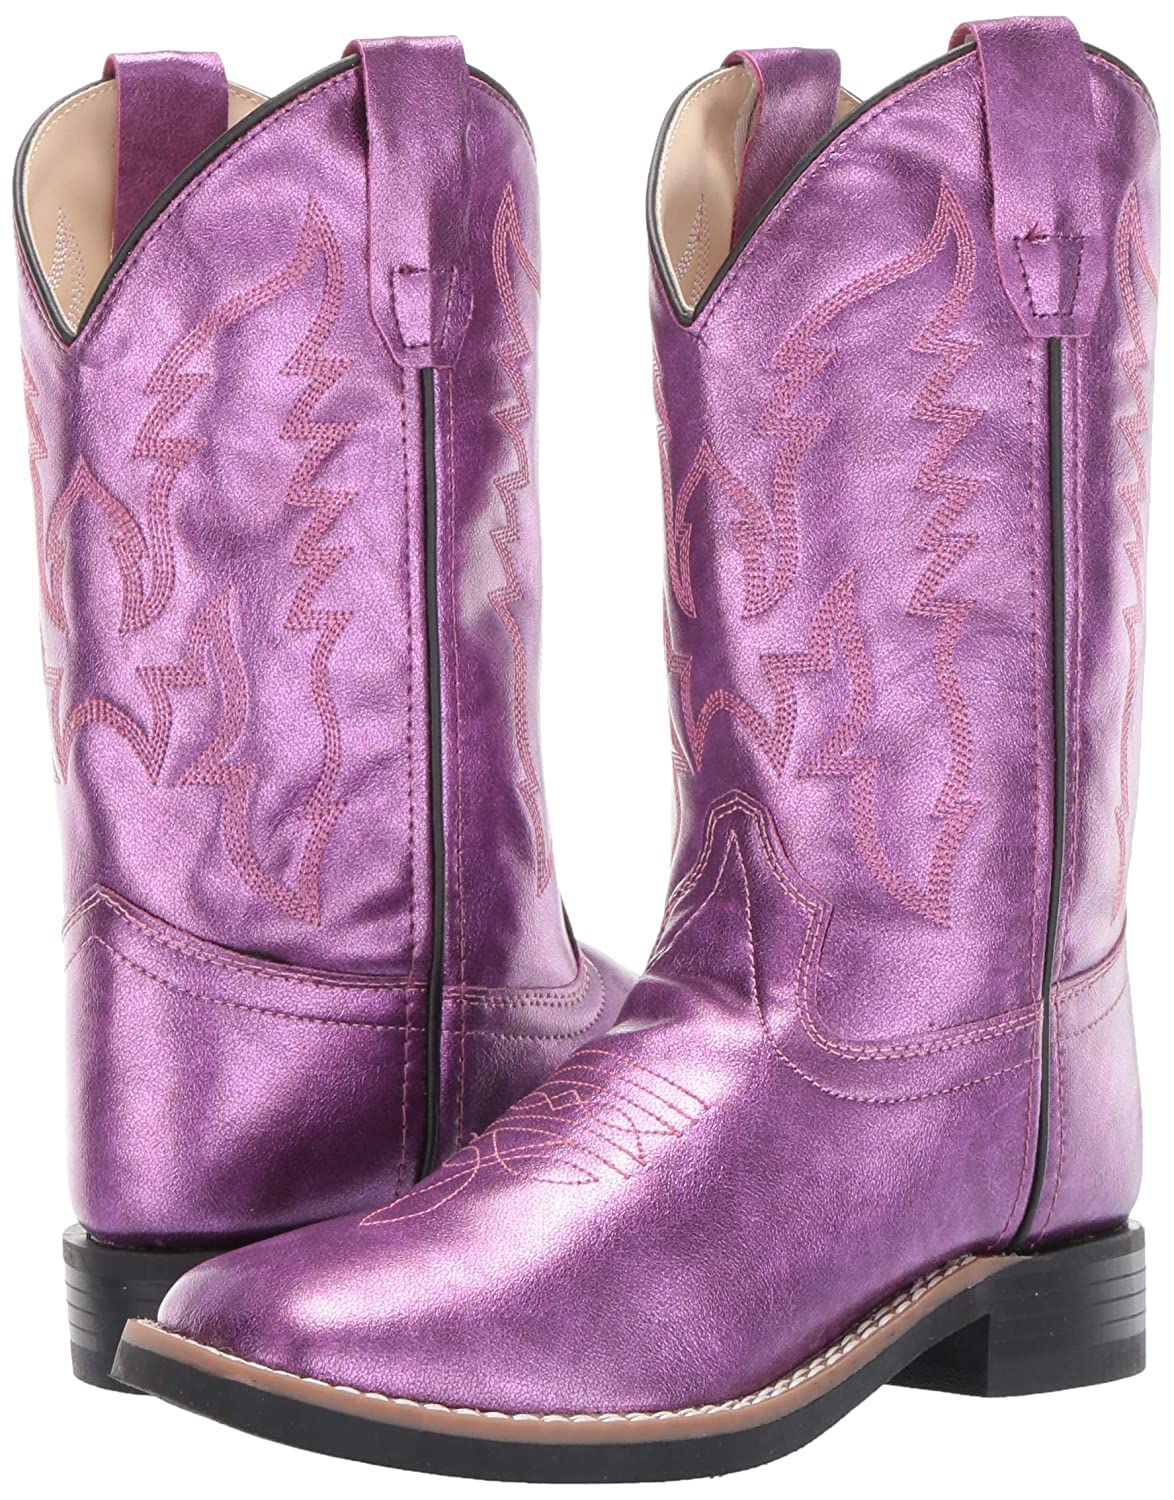 Toddler//Little Kid Old West Kids Boots Baby Girls Gina